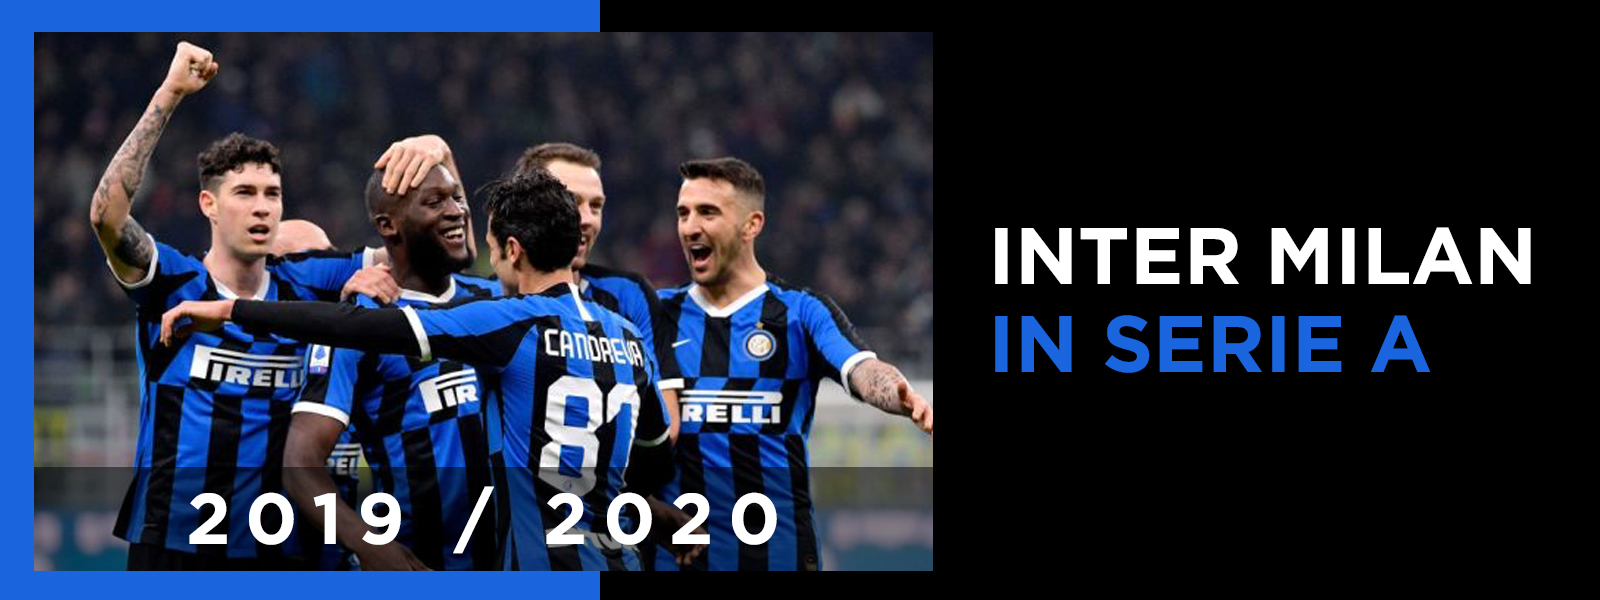 Inter Milan Performance In Italy Serie A 2019 / 2020